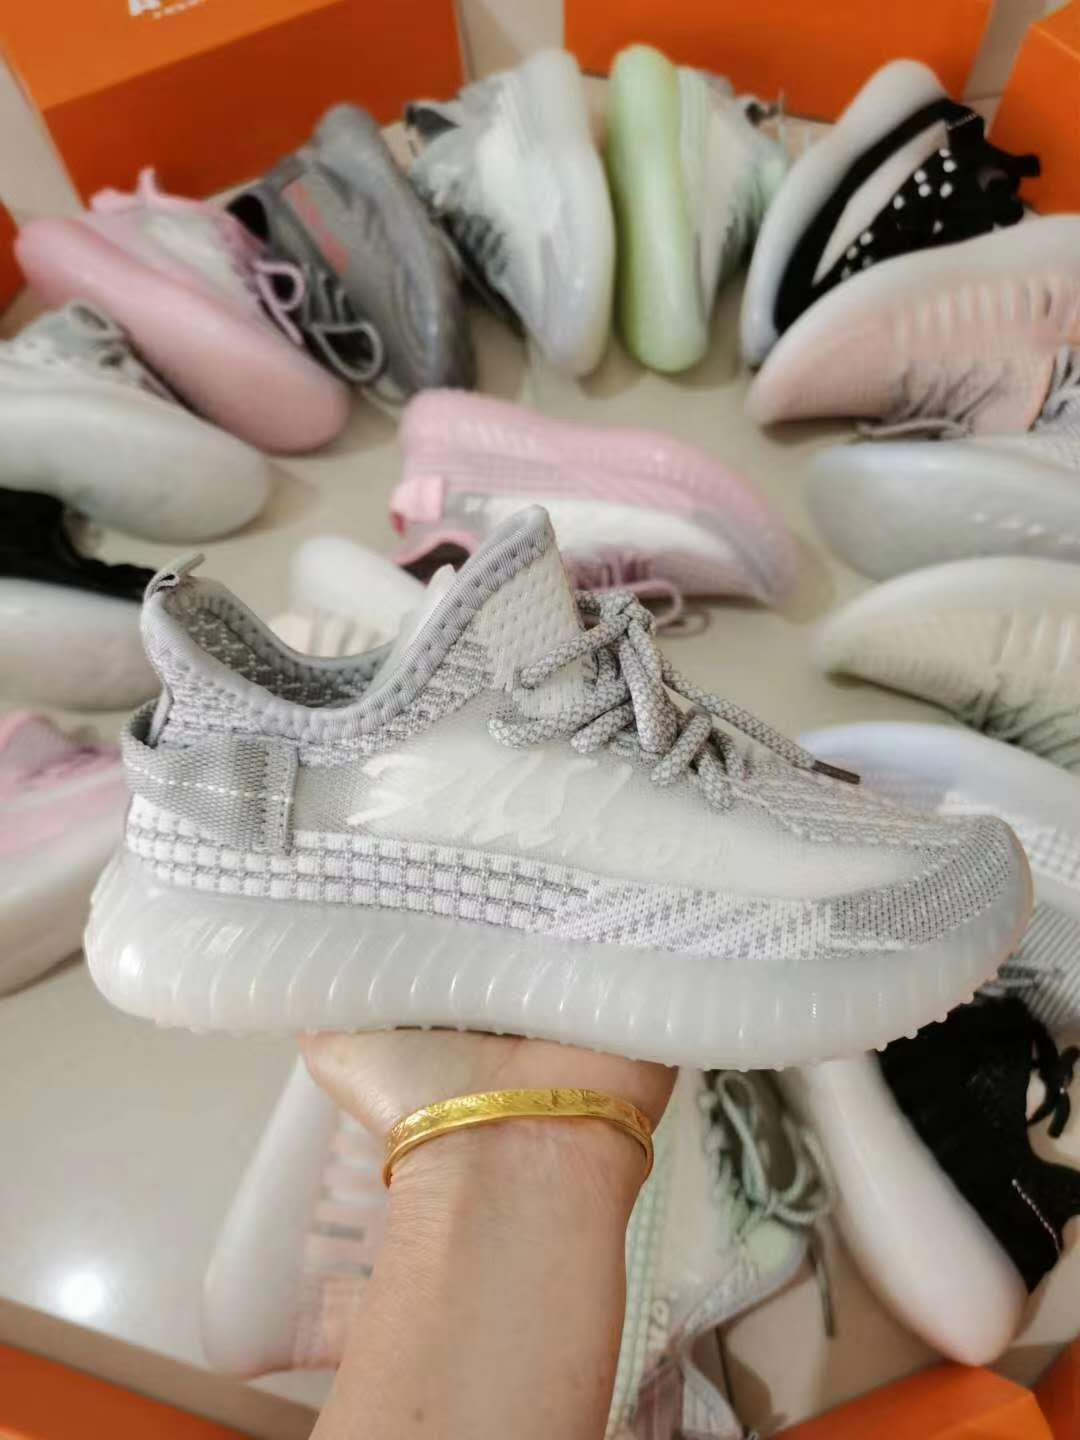 2021 Hot-selling fly knit jelly soles sports shoes breathable sneakers wholesale manufacture in china XW05261